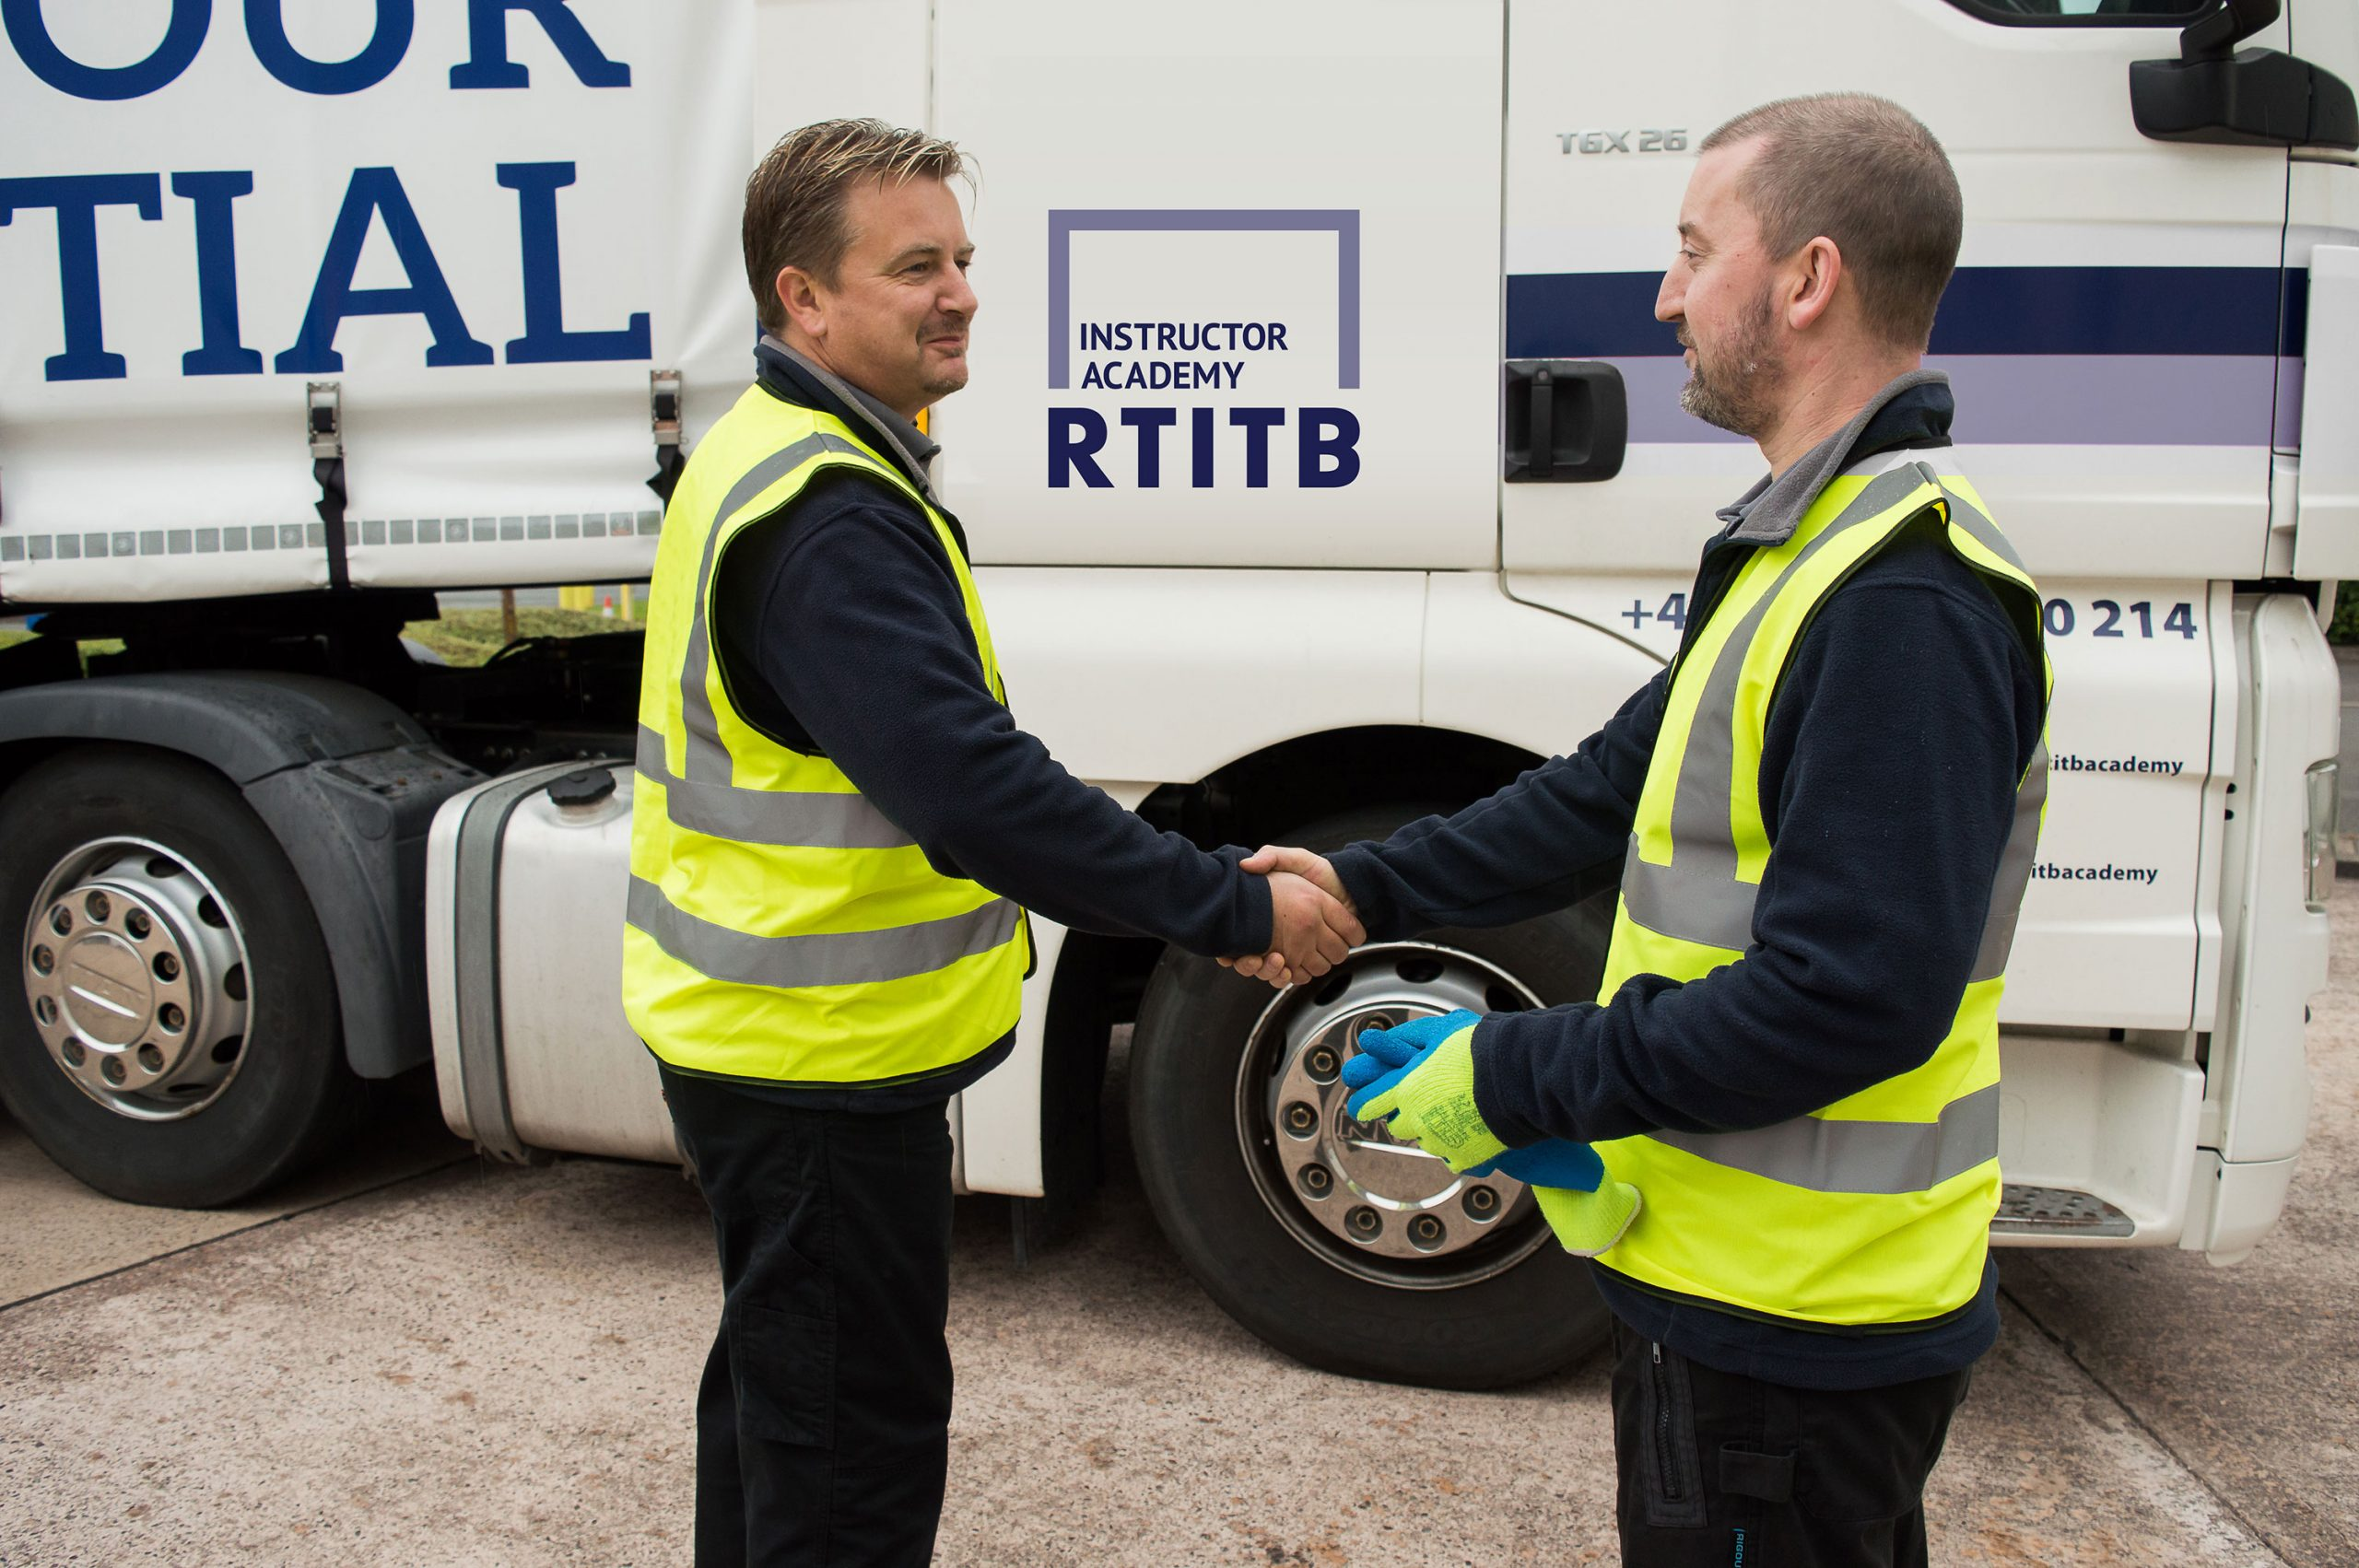 According to the RTITB Instructor Academy, the effectiveness of some lift truck operator and Driver CPC training is being compromised due to poor company culture and its negative impact on employee behaviour.